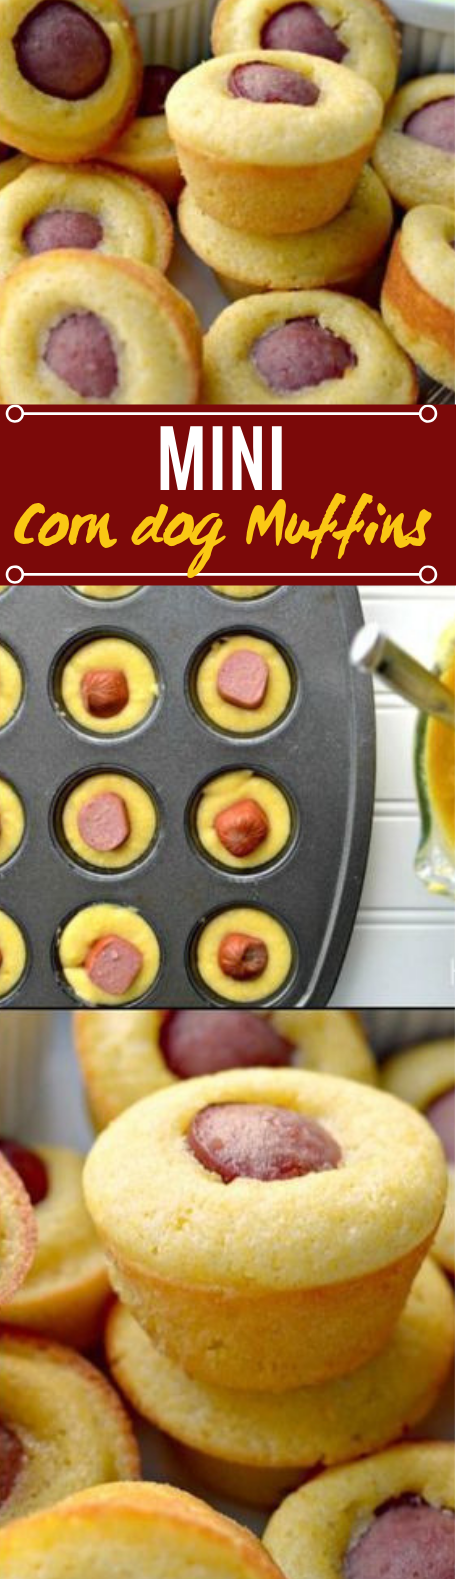 Mini Corn Dog Muffins #snacks #appetizers